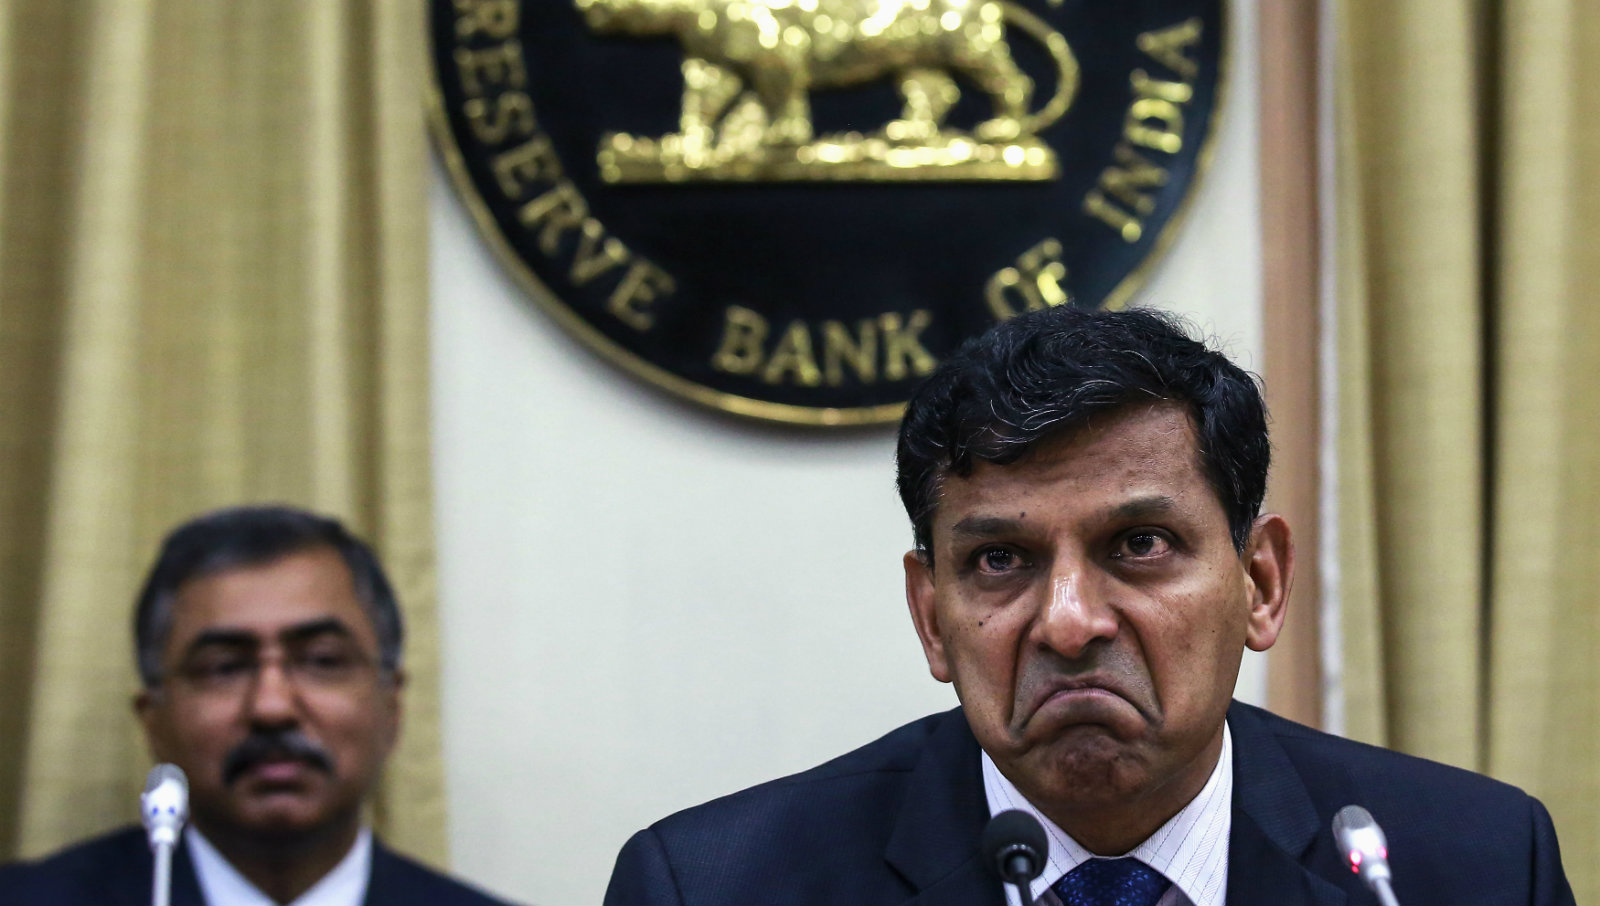 The Reserve Bank of India (RBI) Governor Raghuram Rajan gestures while replying to a question during a news conference after the bi-monthly monetary policy review in Mumbai December 2, 2014. The RBI held interest rates steady as widely expected at a policy review on Tuesday, and said it could ease monetary policy early next year provided inflationary pressures do not reappear and the government controls the fiscal deficit.